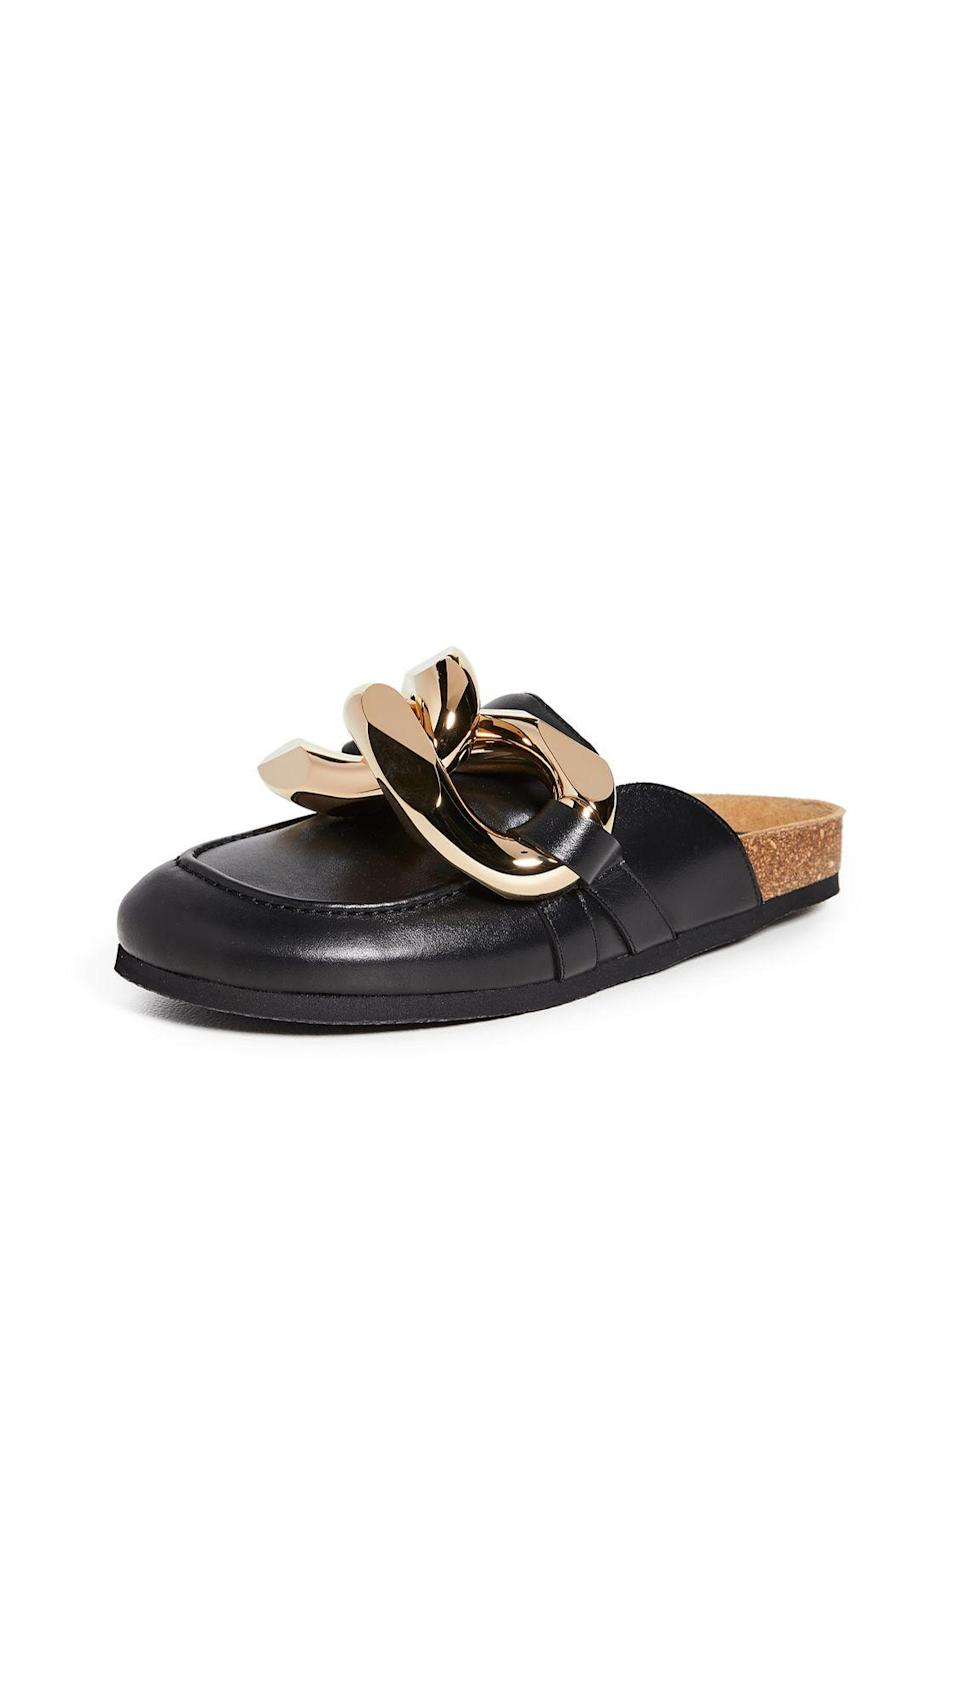 """<p><strong>JW Anderson </strong></p><p>shopbop.com</p><p><a href=""""https://go.redirectingat.com?id=74968X1596630&url=https%3A%2F%2Fwww.shopbop.com%2Fchain-loafer-jw-anderson%2Fvp%2Fv%3D1%2F1561106422.htm&sref=https%3A%2F%2Fwww.cosmopolitan.com%2Fstyle-beauty%2Ffashion%2Fg36098924%2Fshopbop-spring-sale%2F"""" rel=""""nofollow noopener"""" target=""""_blank"""" data-ylk=""""slk:SHOP NOW"""" class=""""link rapid-noclick-resp"""">SHOP NOW</a></p><p><strong><del>$640</del> $512 (20% off)</strong></p><p>JW Anderson's cult-loved chain mules are rarely found on sale. </p>"""